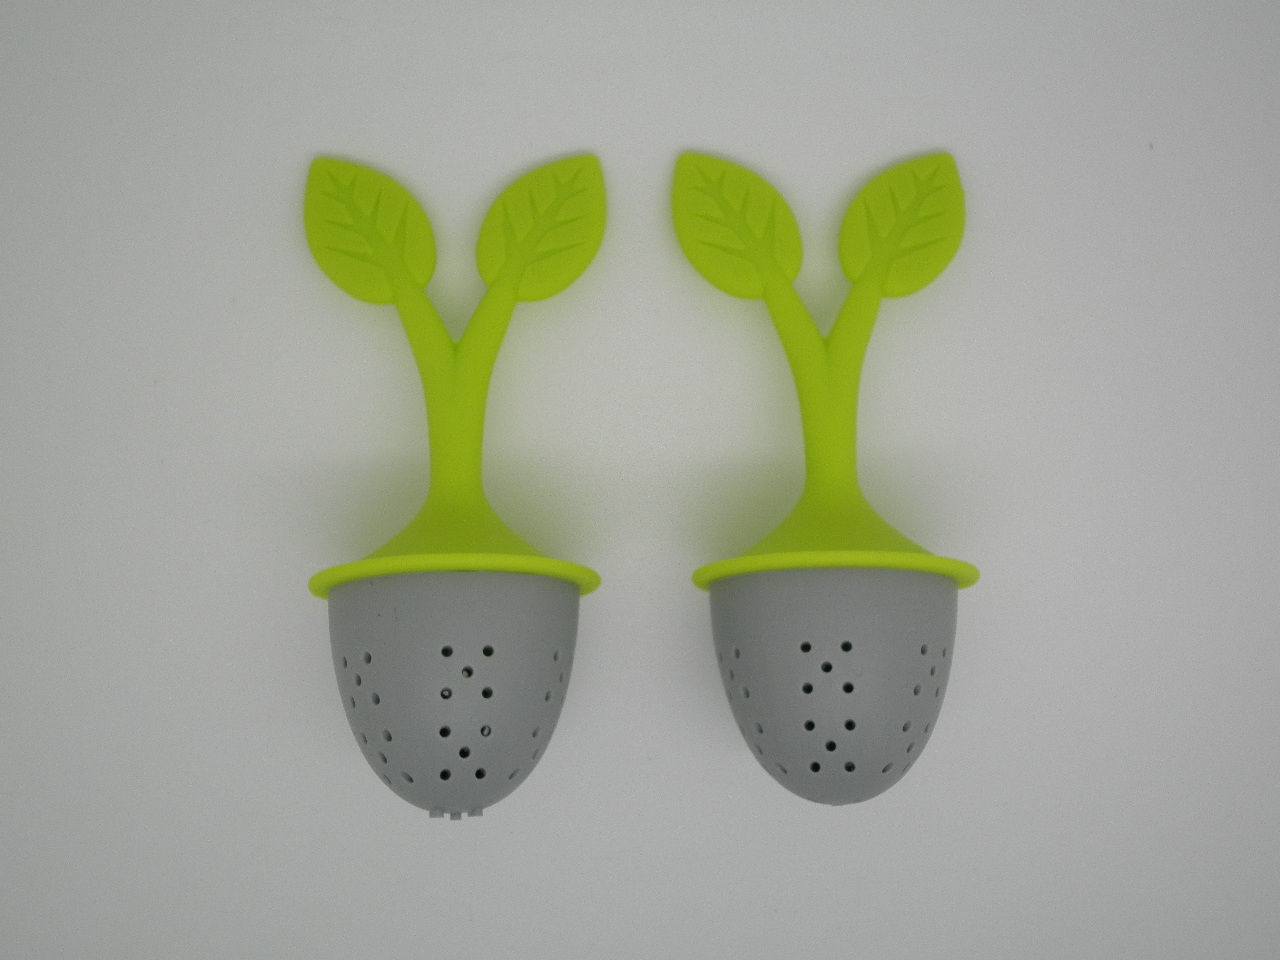 http://www.refinehksilicone.cn/data/images/product/20180417101054_981.JPG